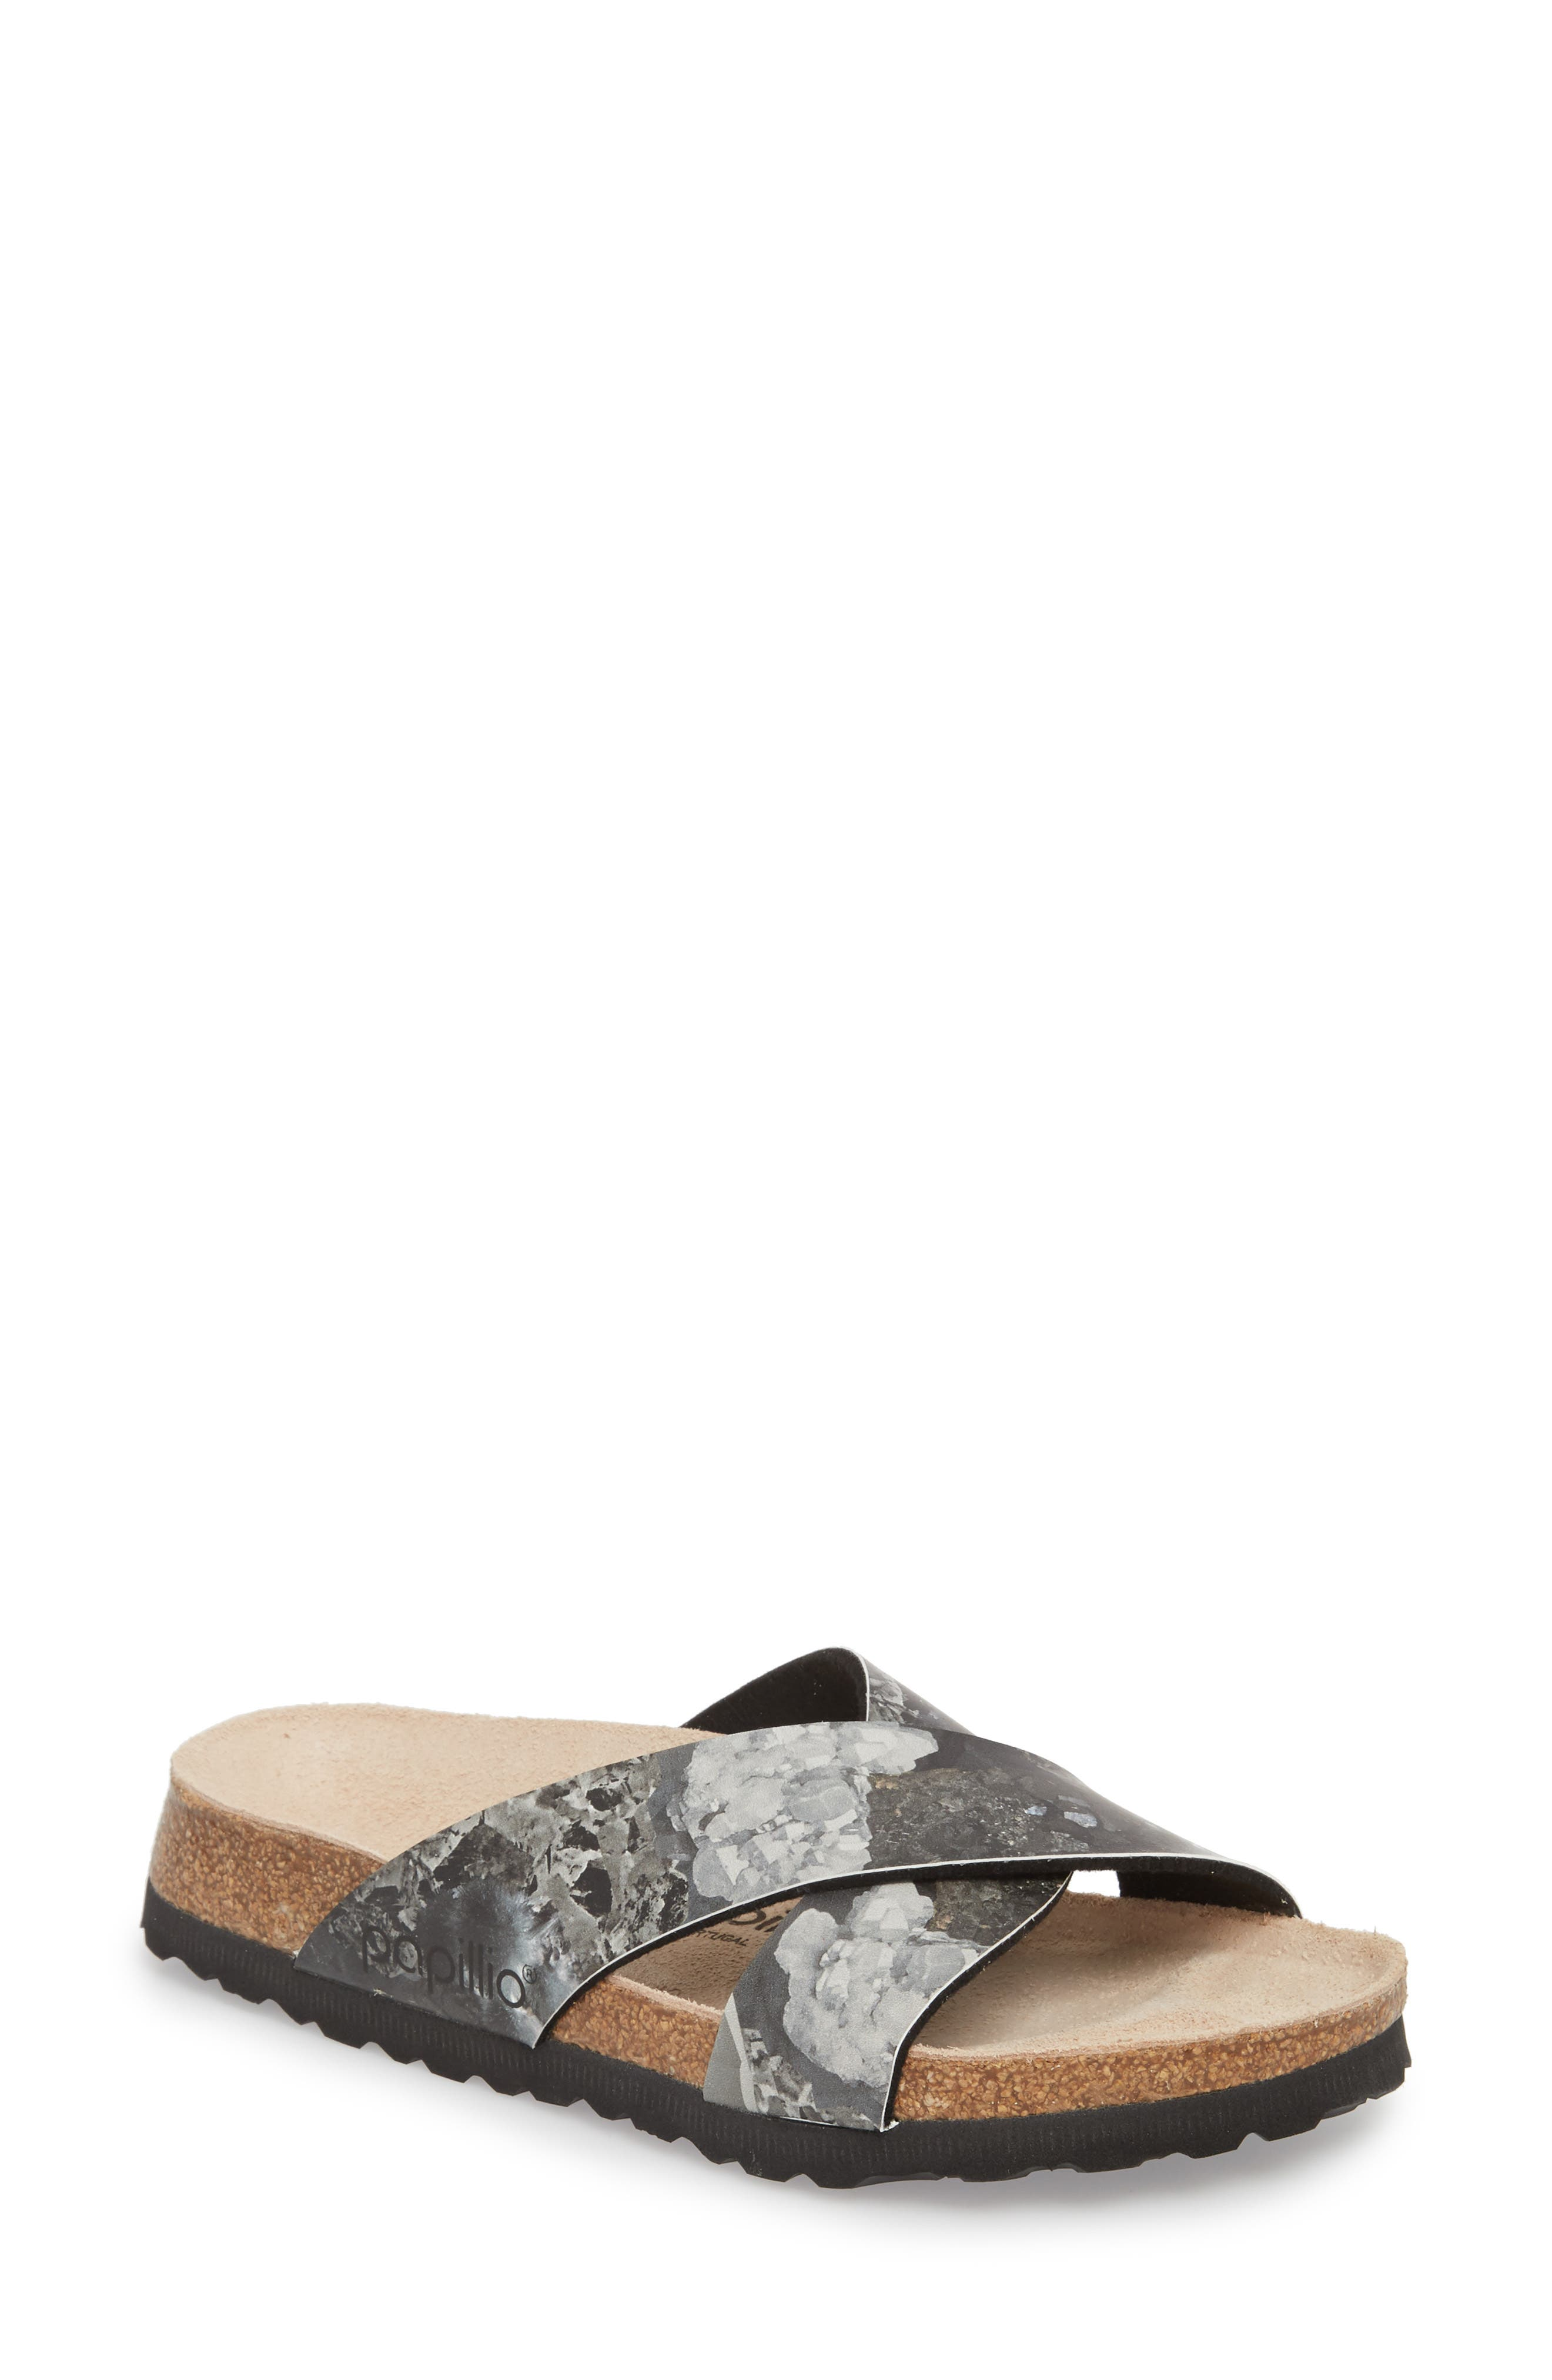 Daytona Crystal Slide Sandal,                         Main,                         color, 001